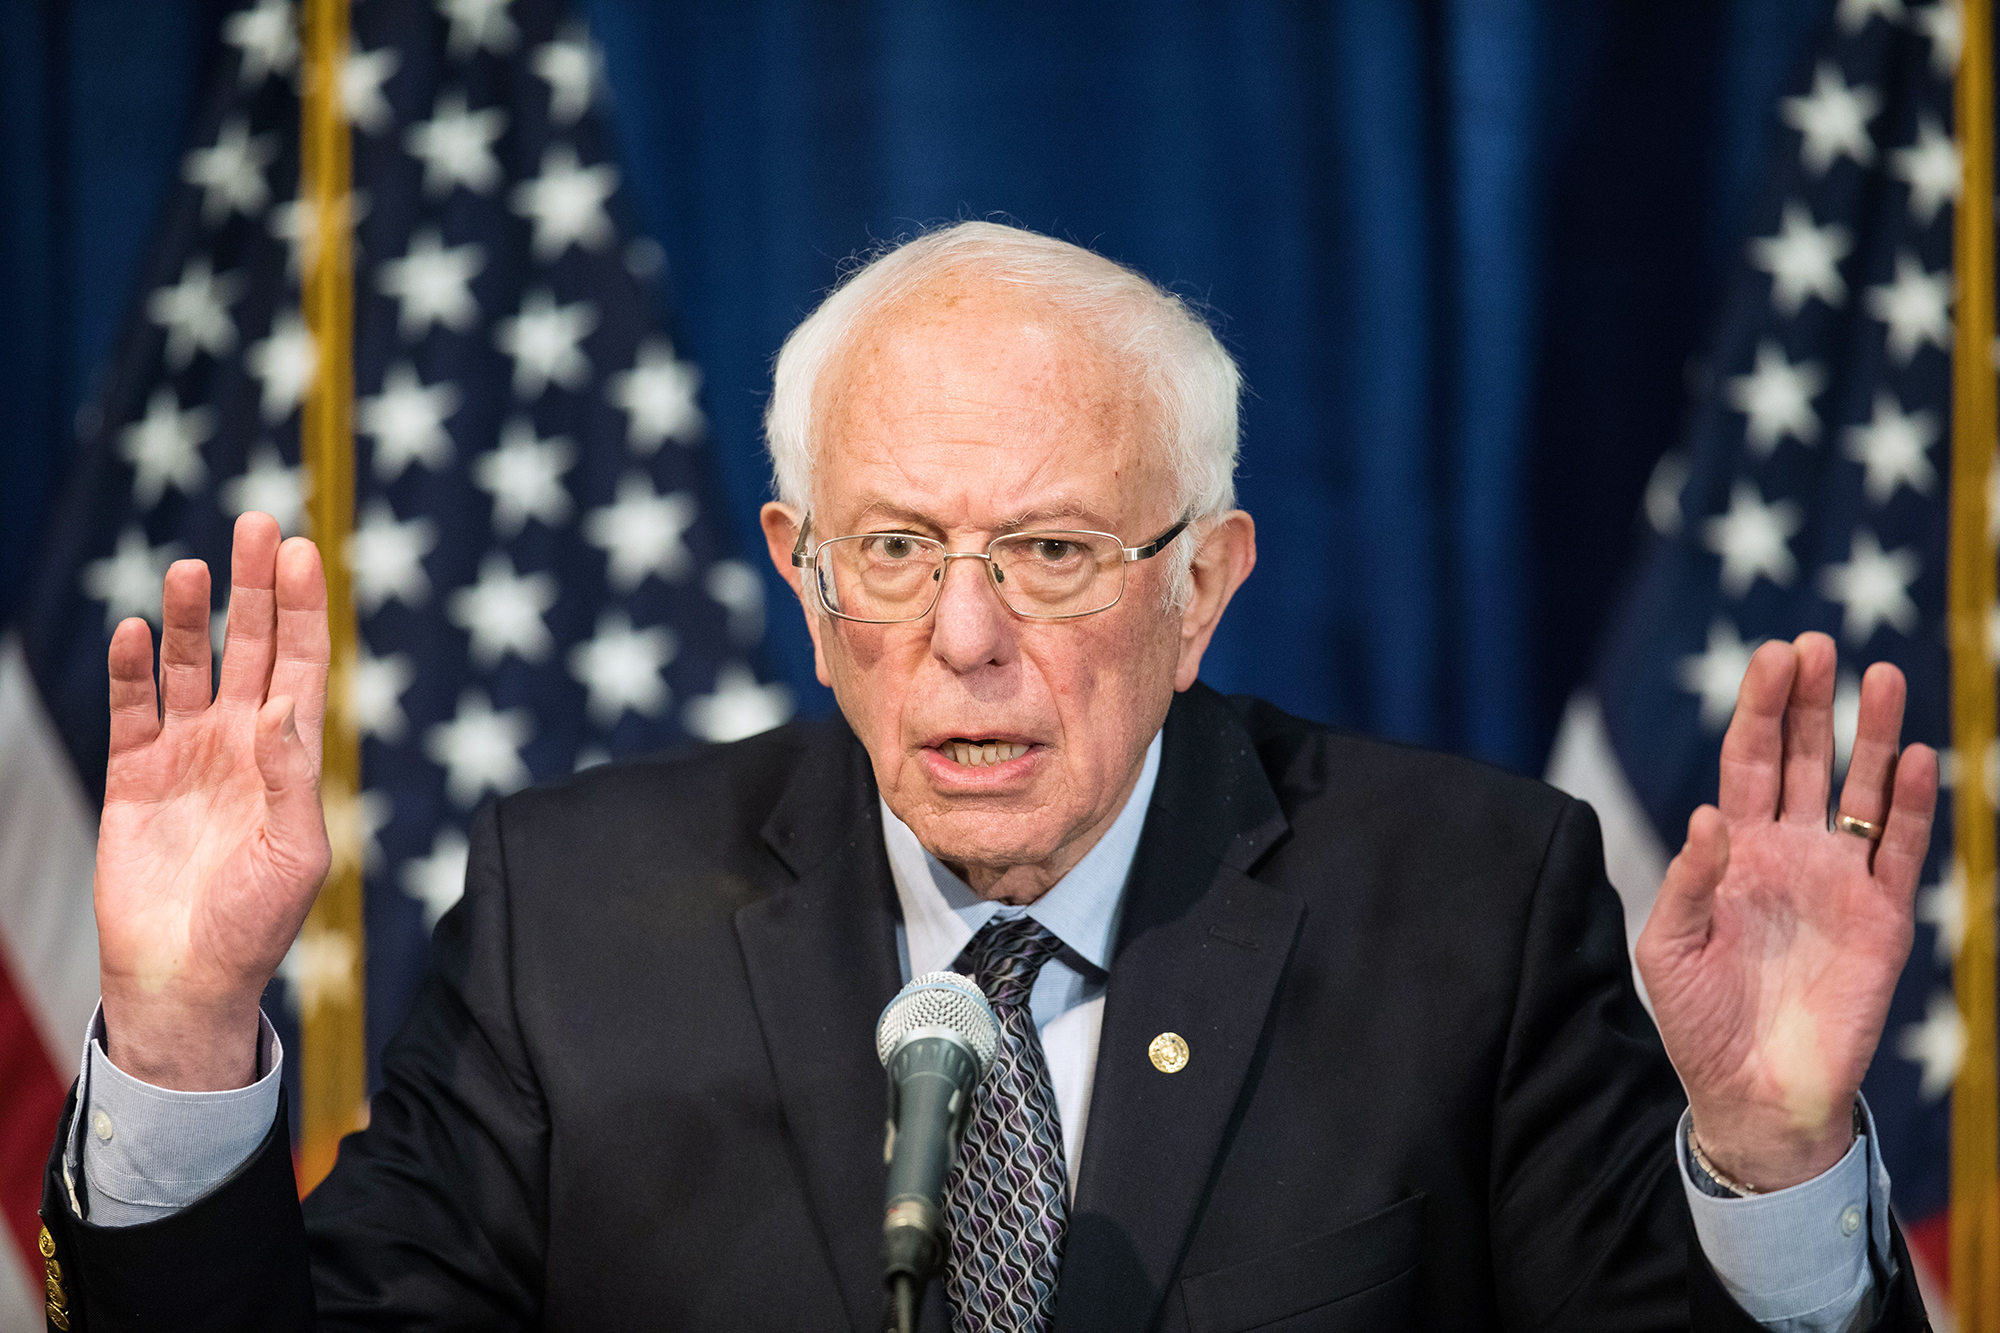 Then Democratic presidential candidate Sen. Bernie Sanders delivers a campaign update at the Hotel Vermont on March 11 in Burlington, Vermont.